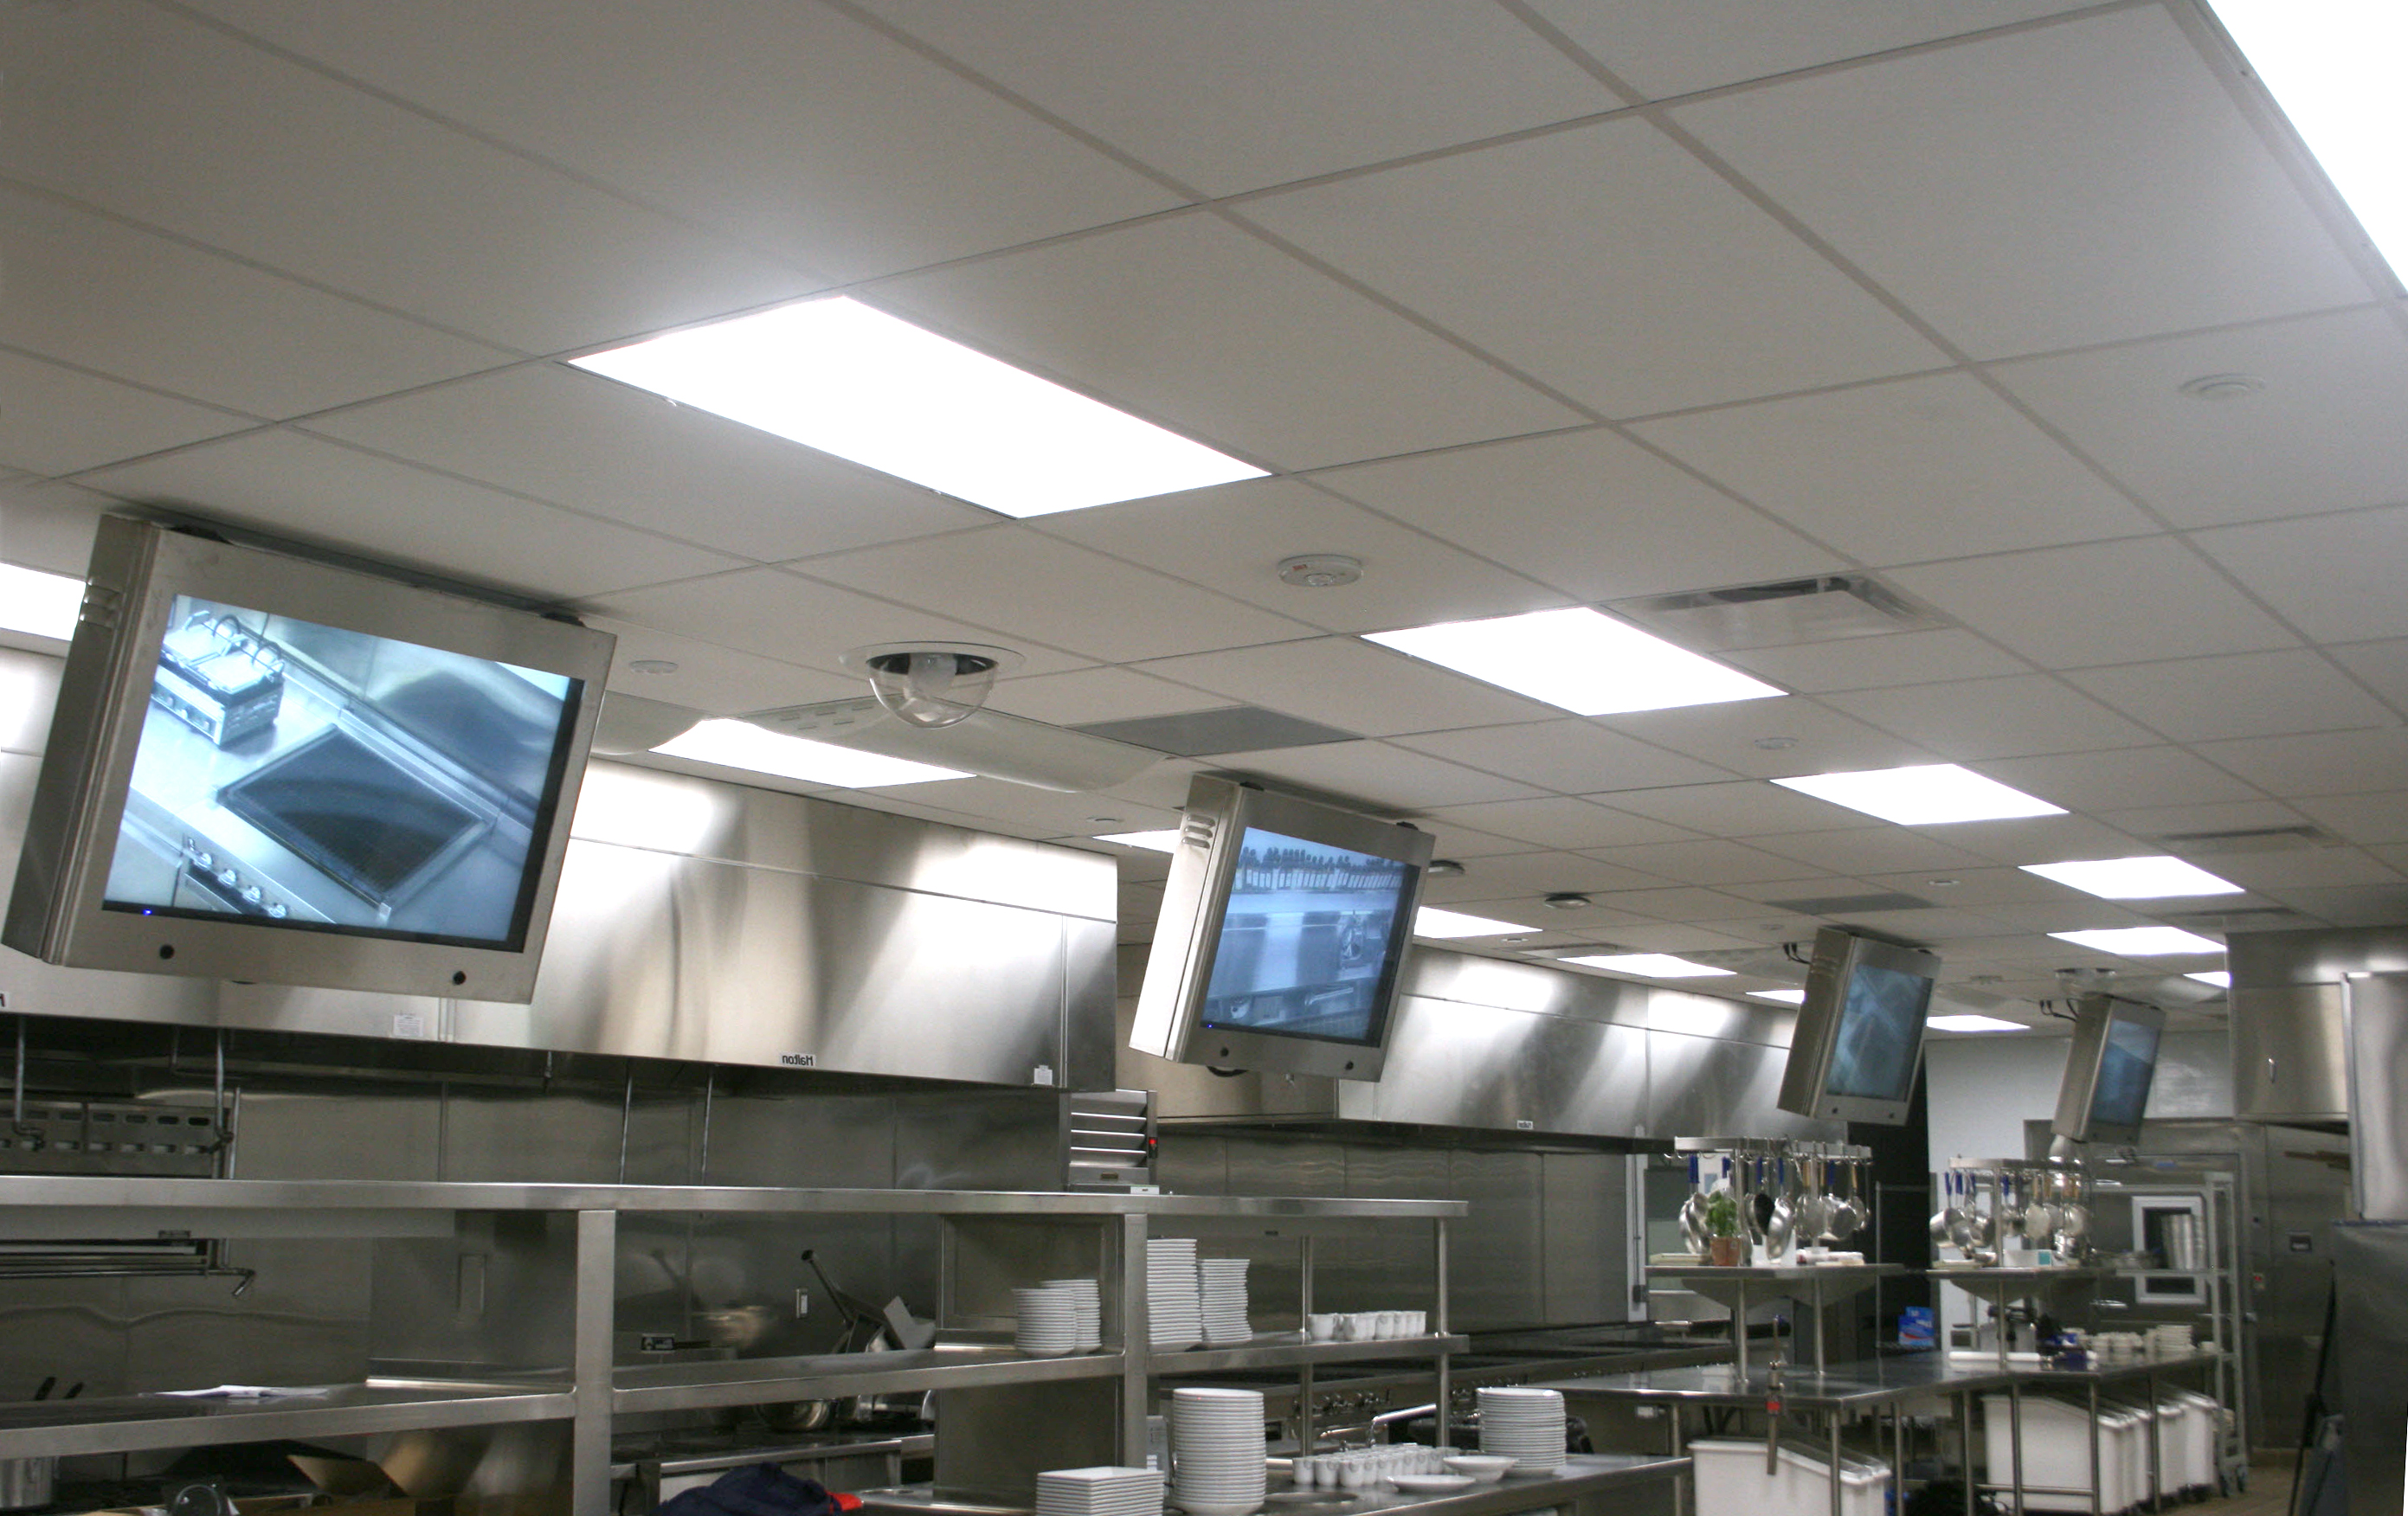 Flat panel displays are angle-mounted above kitchen workstations, offering easy viewing of lesson materials without taking valuable counter space or interfering with food preparation.